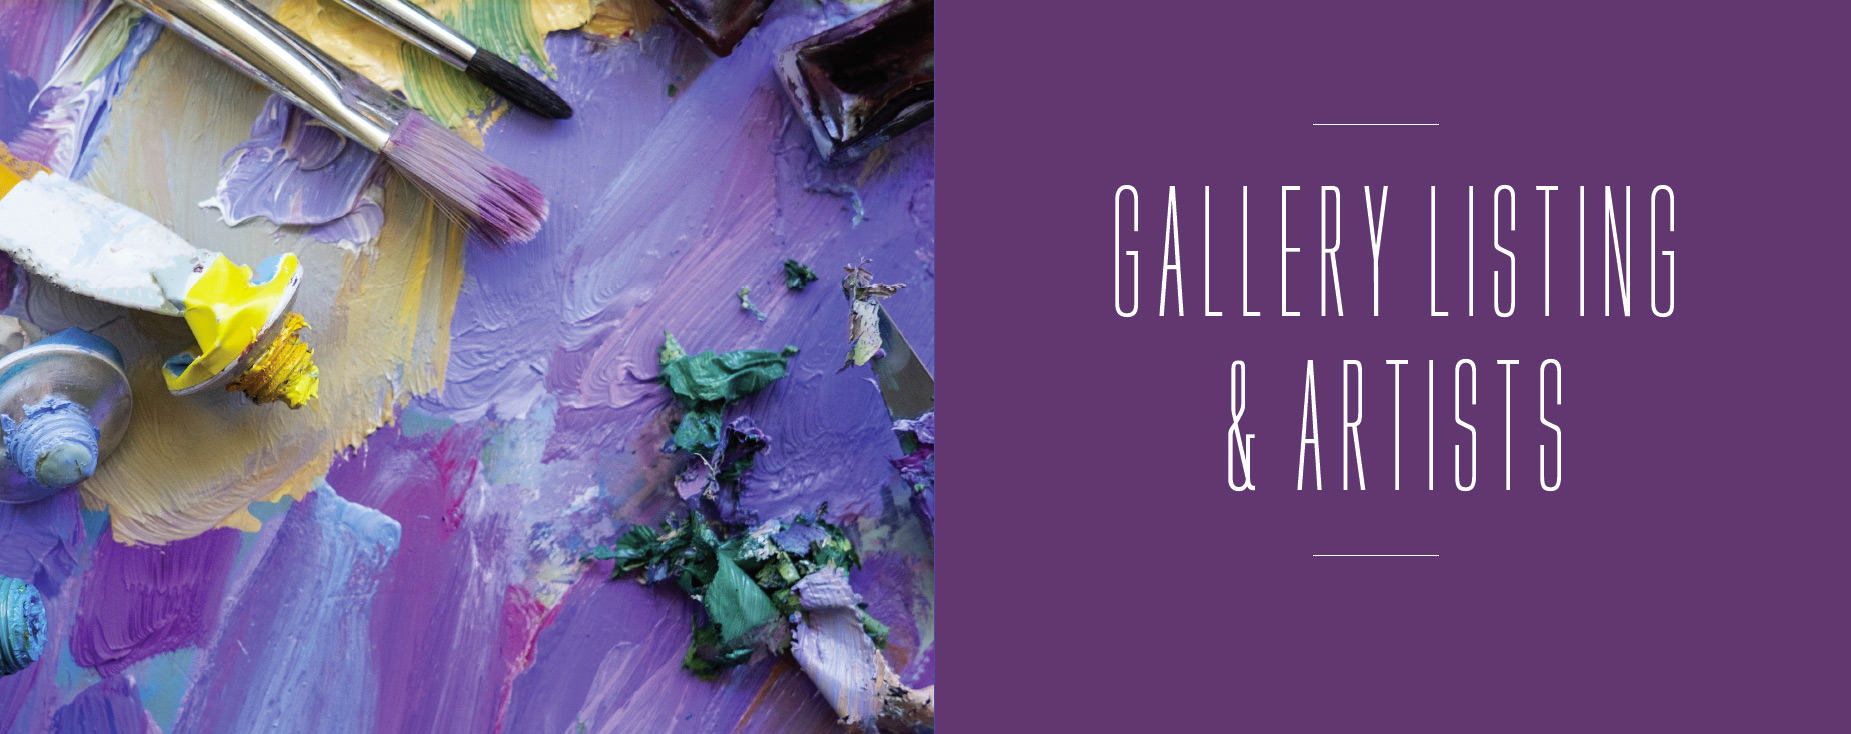 Gallery Listing and Artists title image